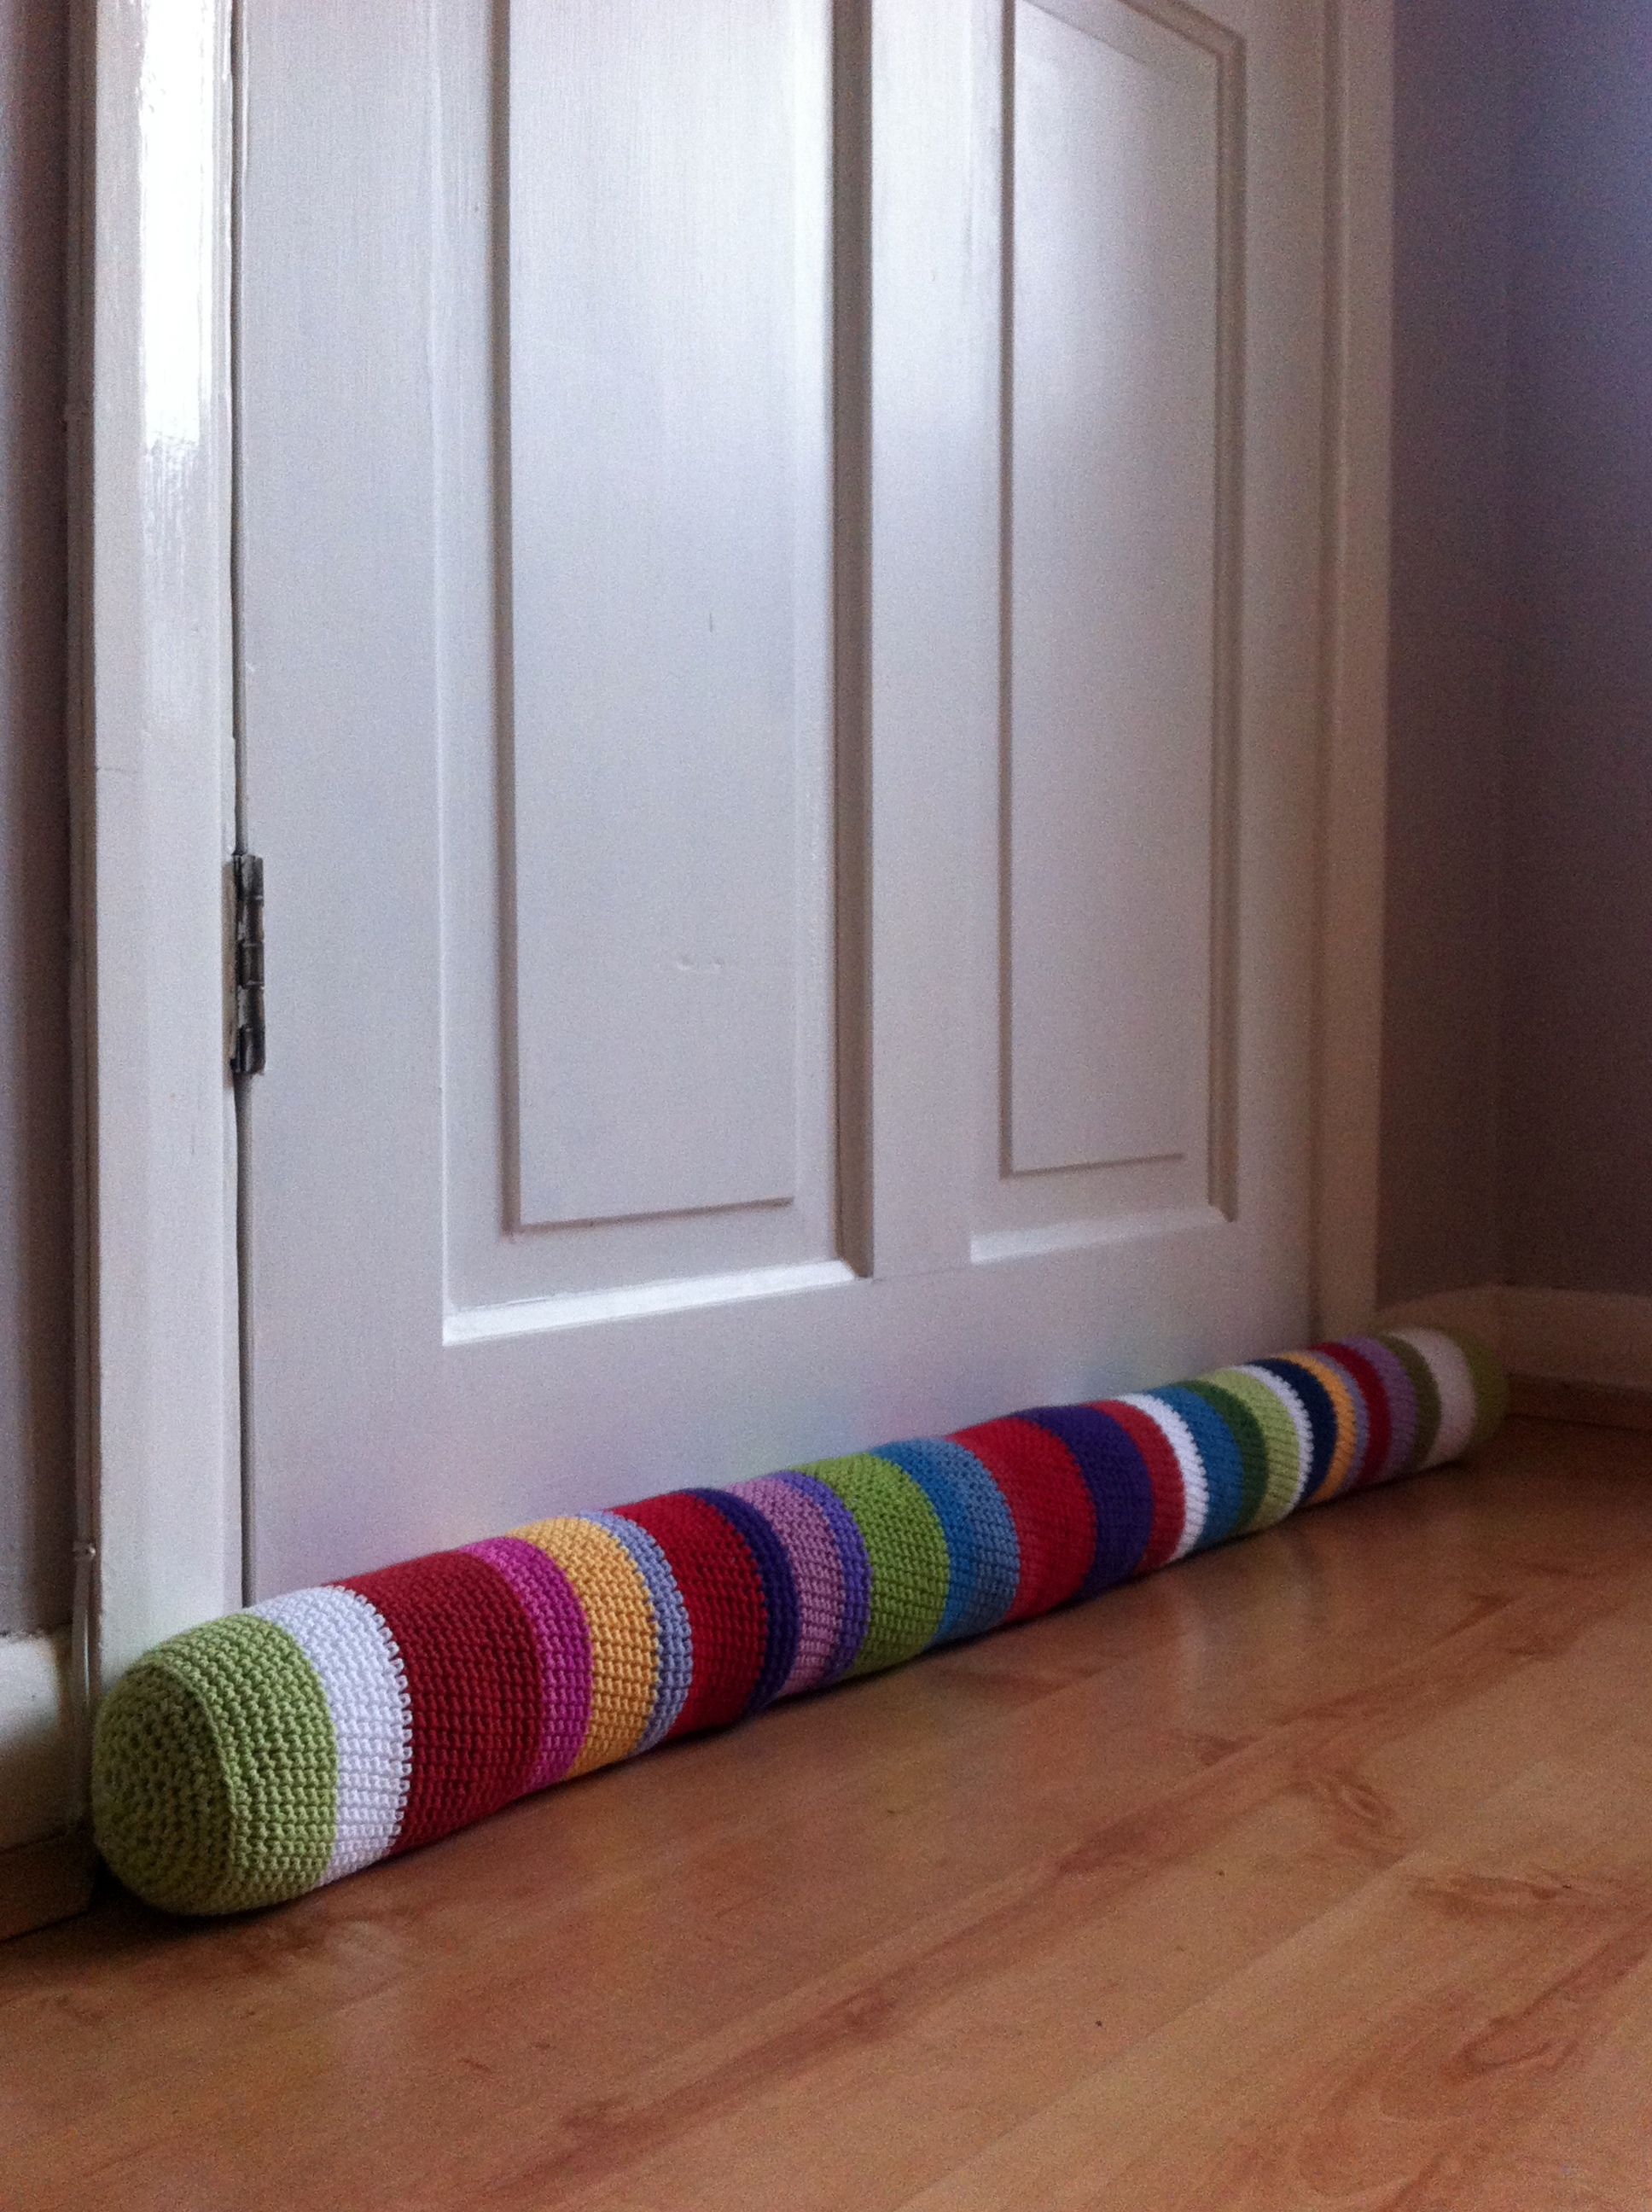 Door draft stopper - Even